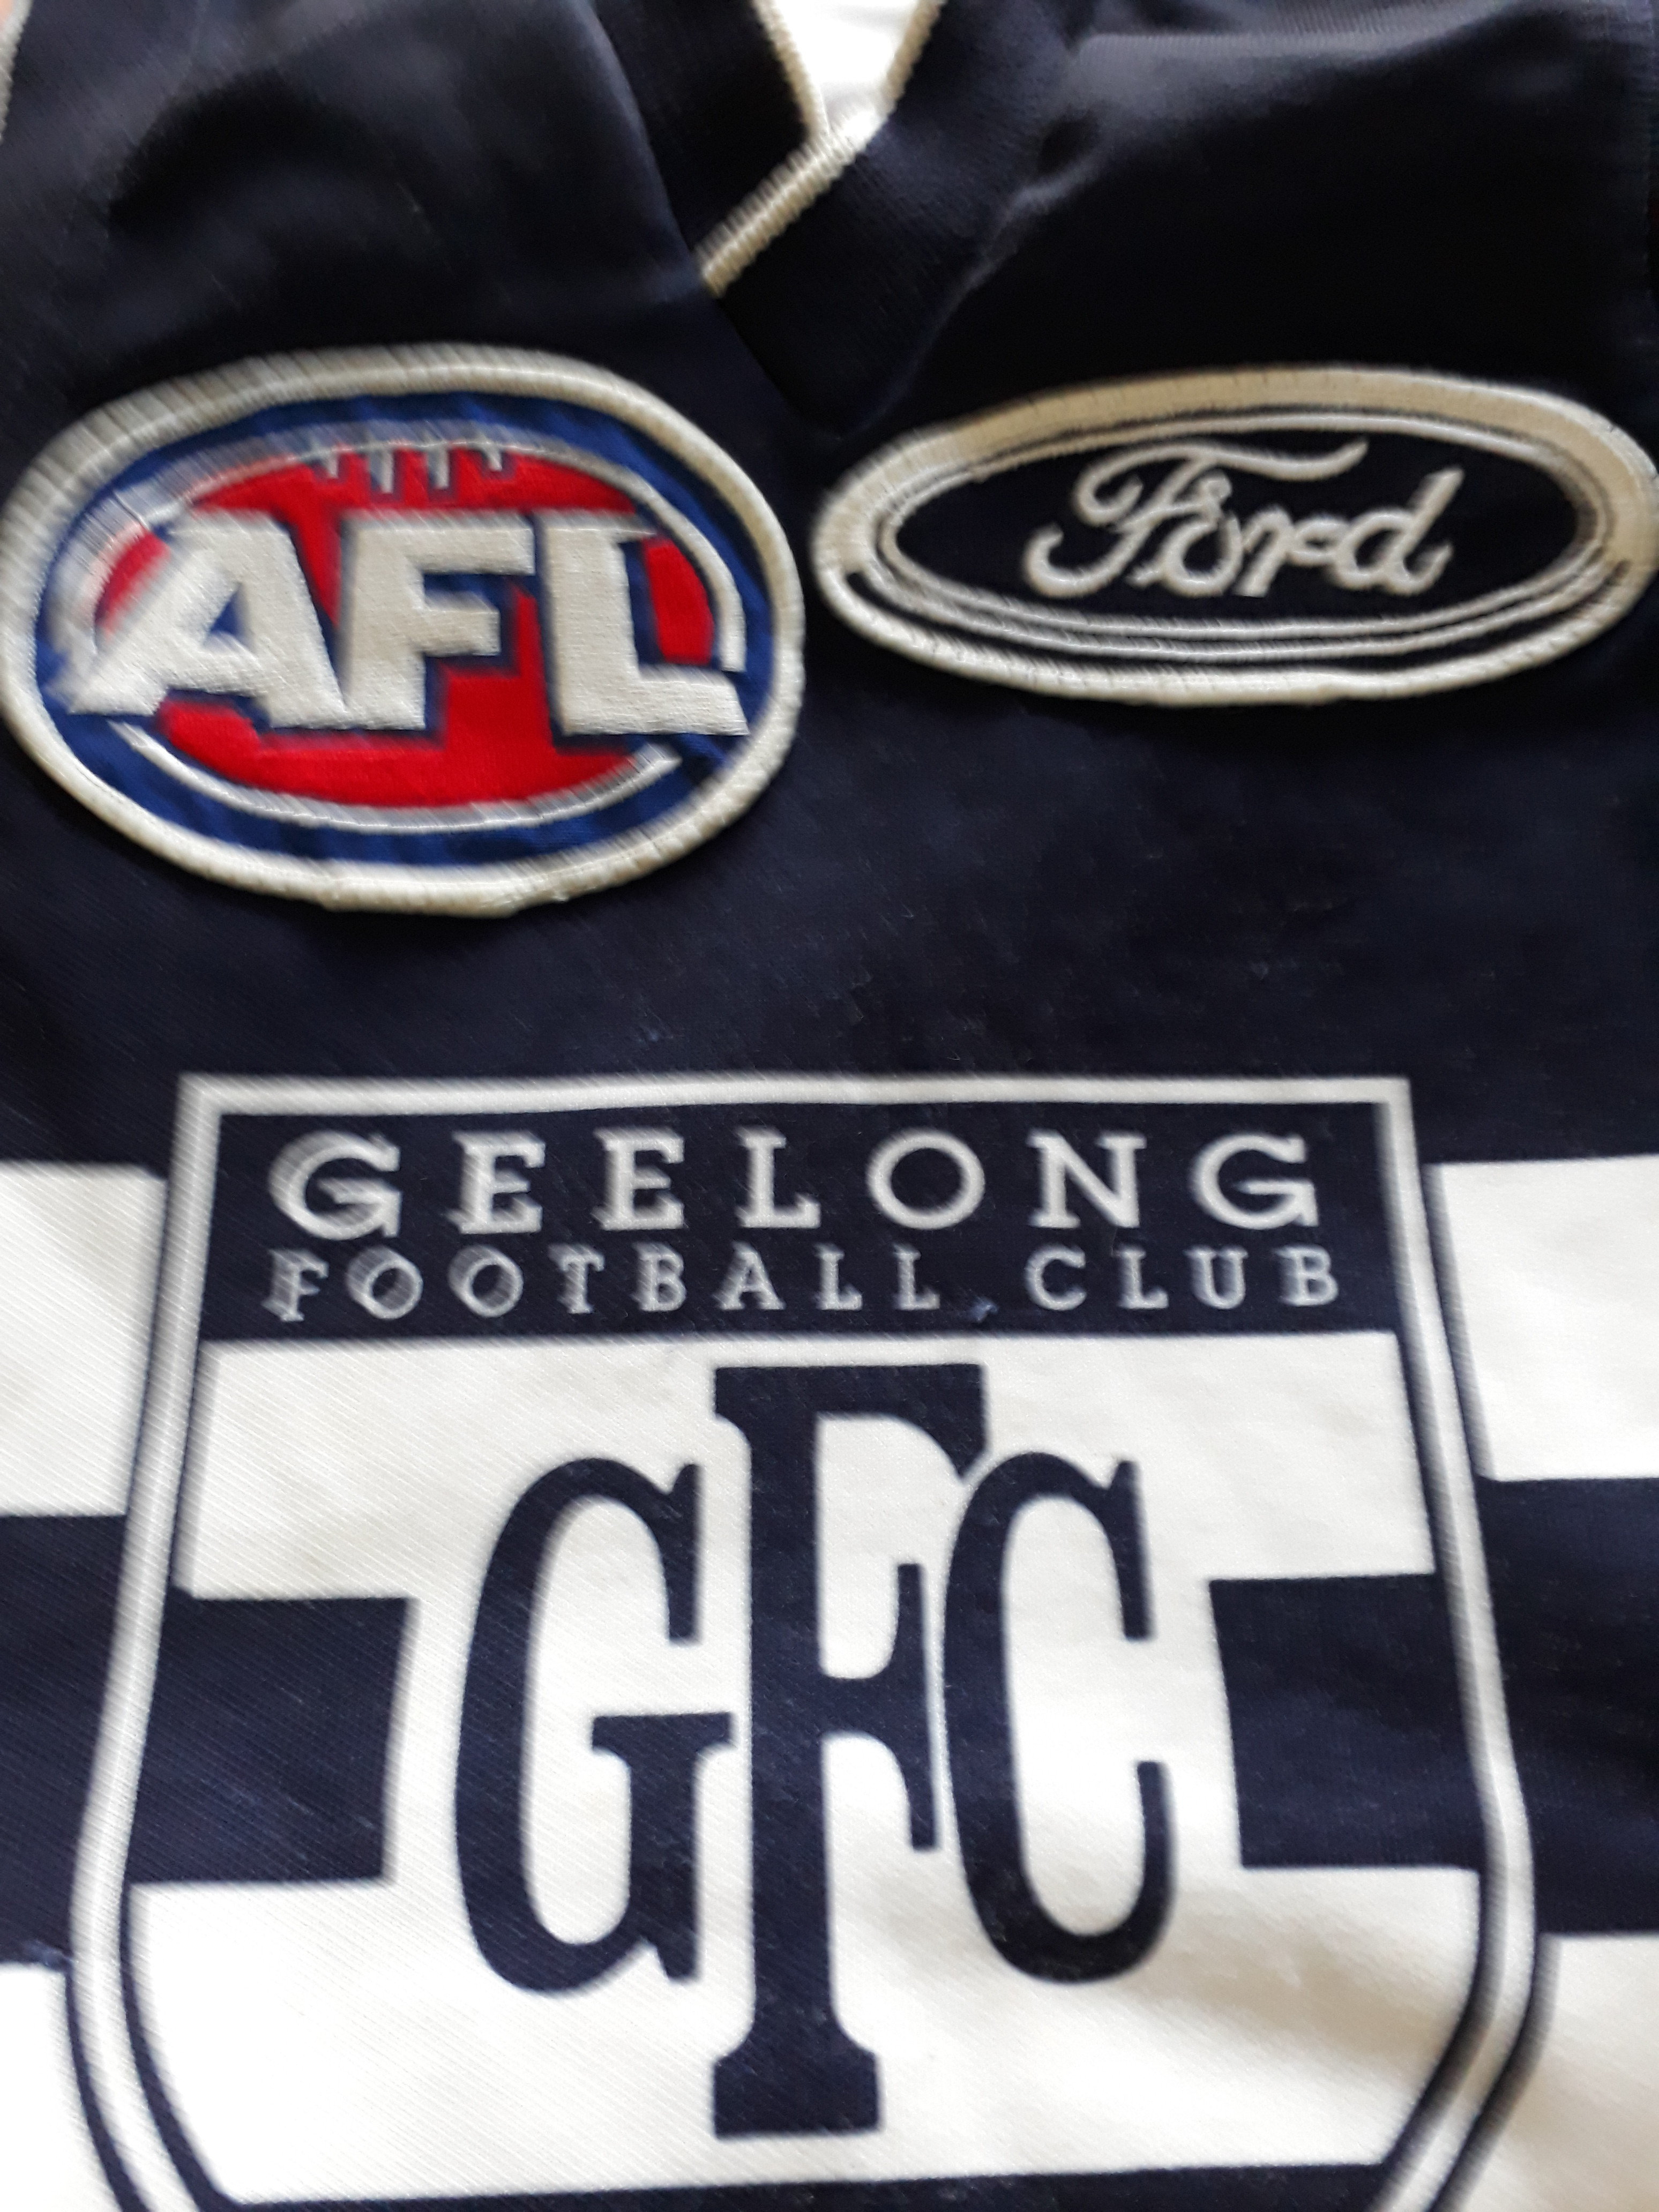 Geelong Football Club Guernsey